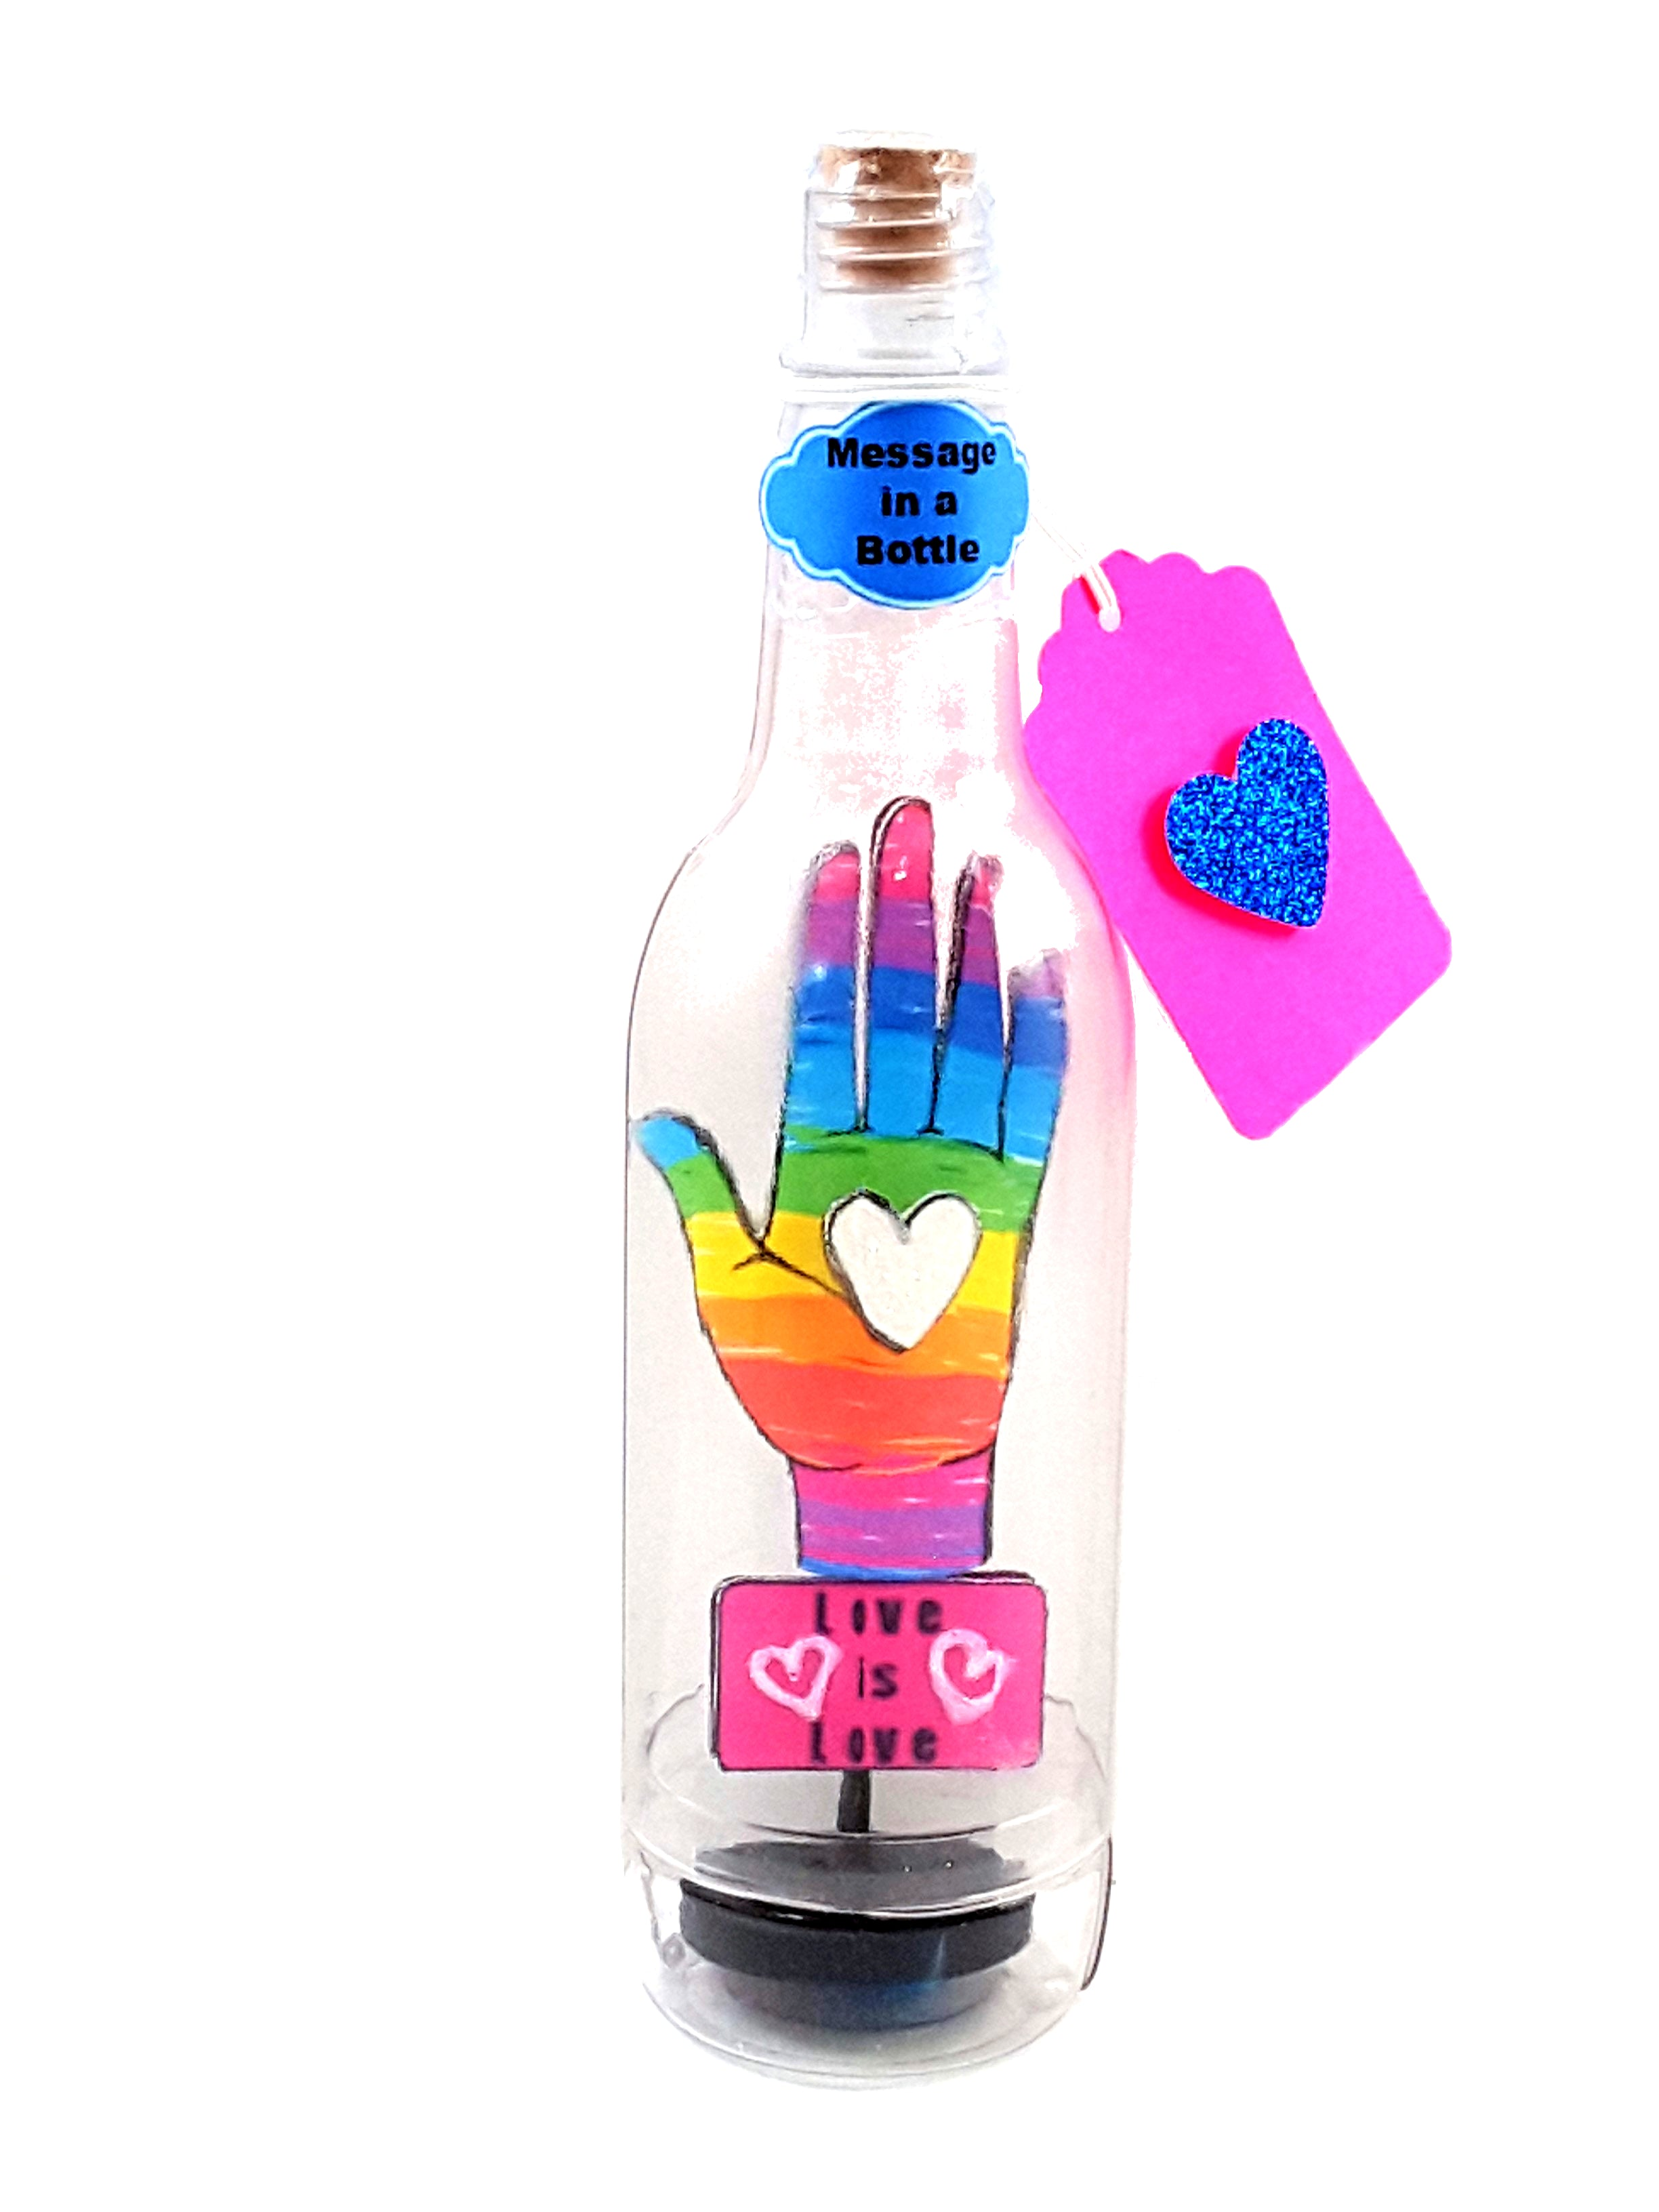 Love is Love LGTBQ Stand-Up Card Message in a Bottle - The Last Word Bish